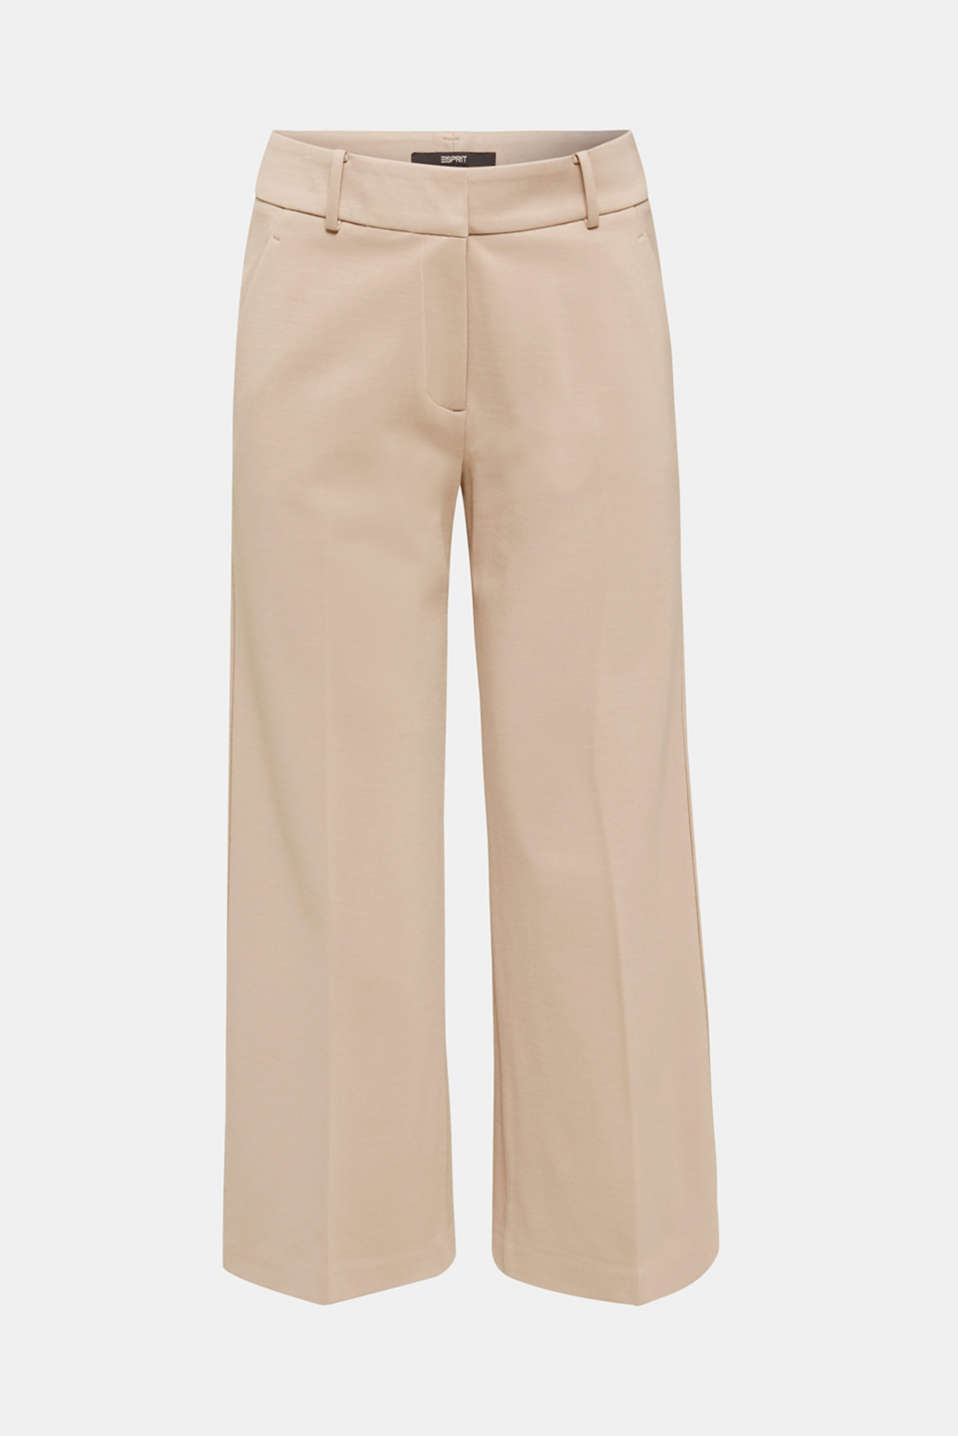 Stretch jersey culottes, BEIGE, detail image number 5